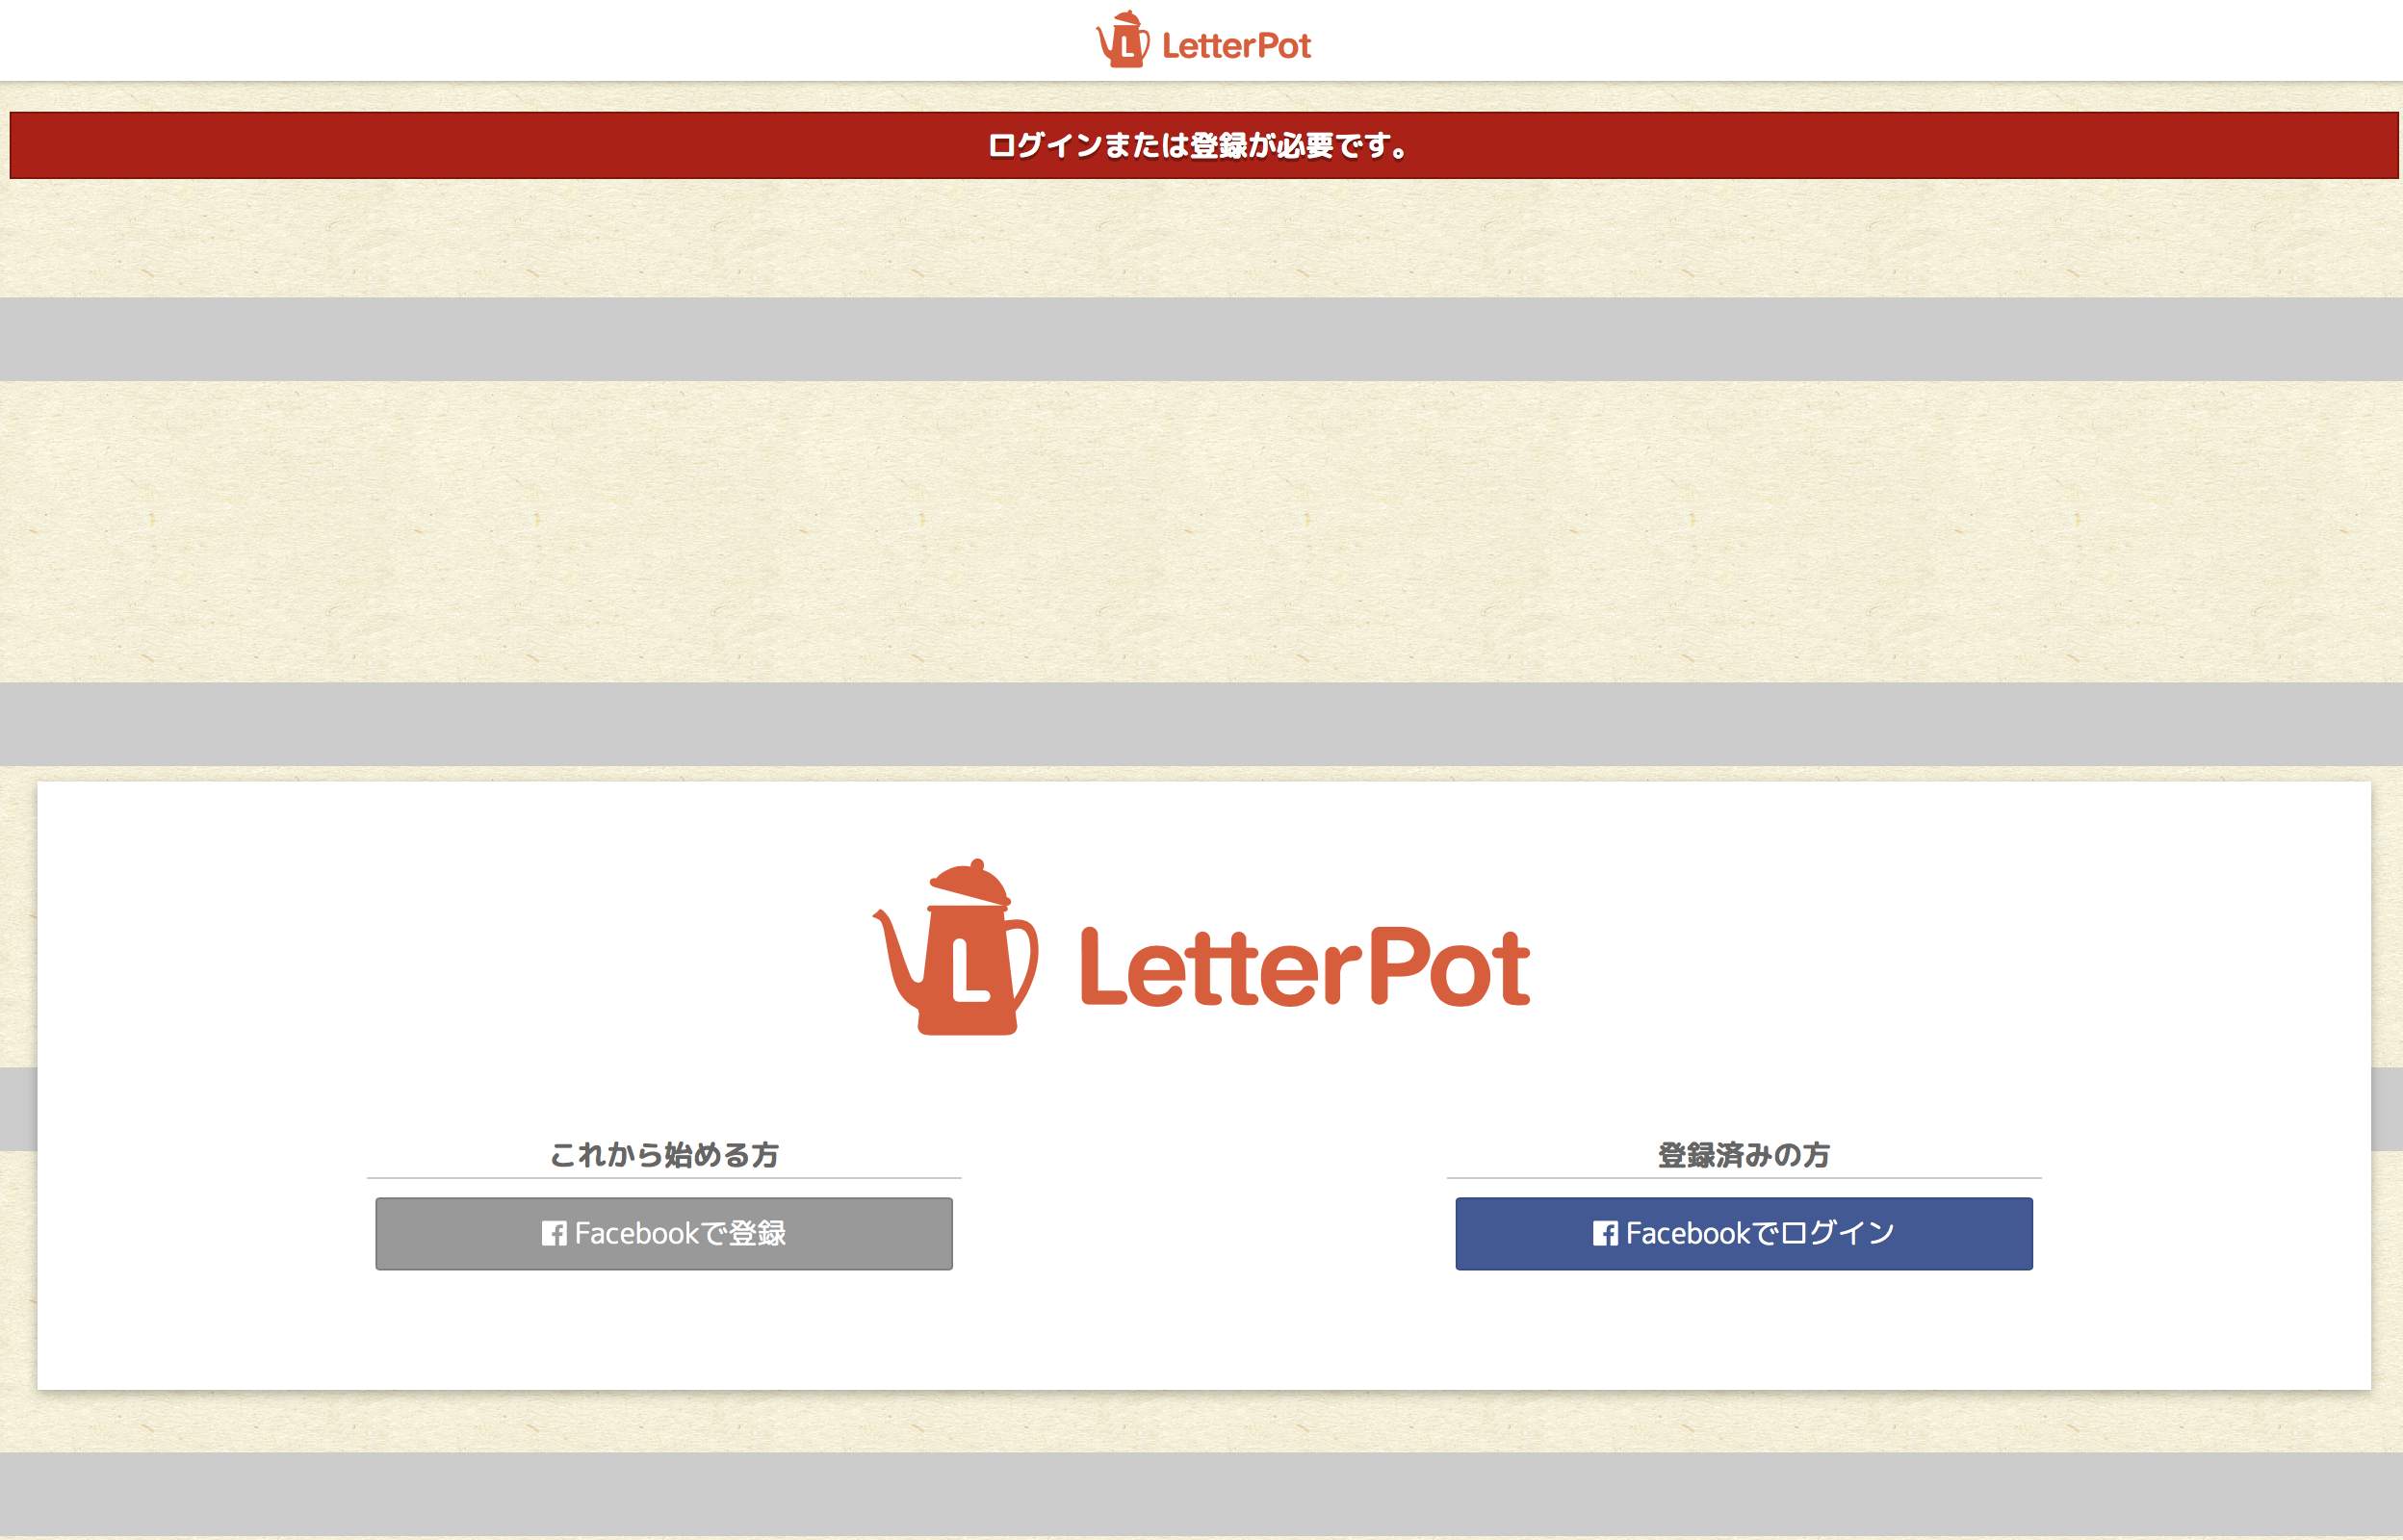 LetterPot(レターポット)